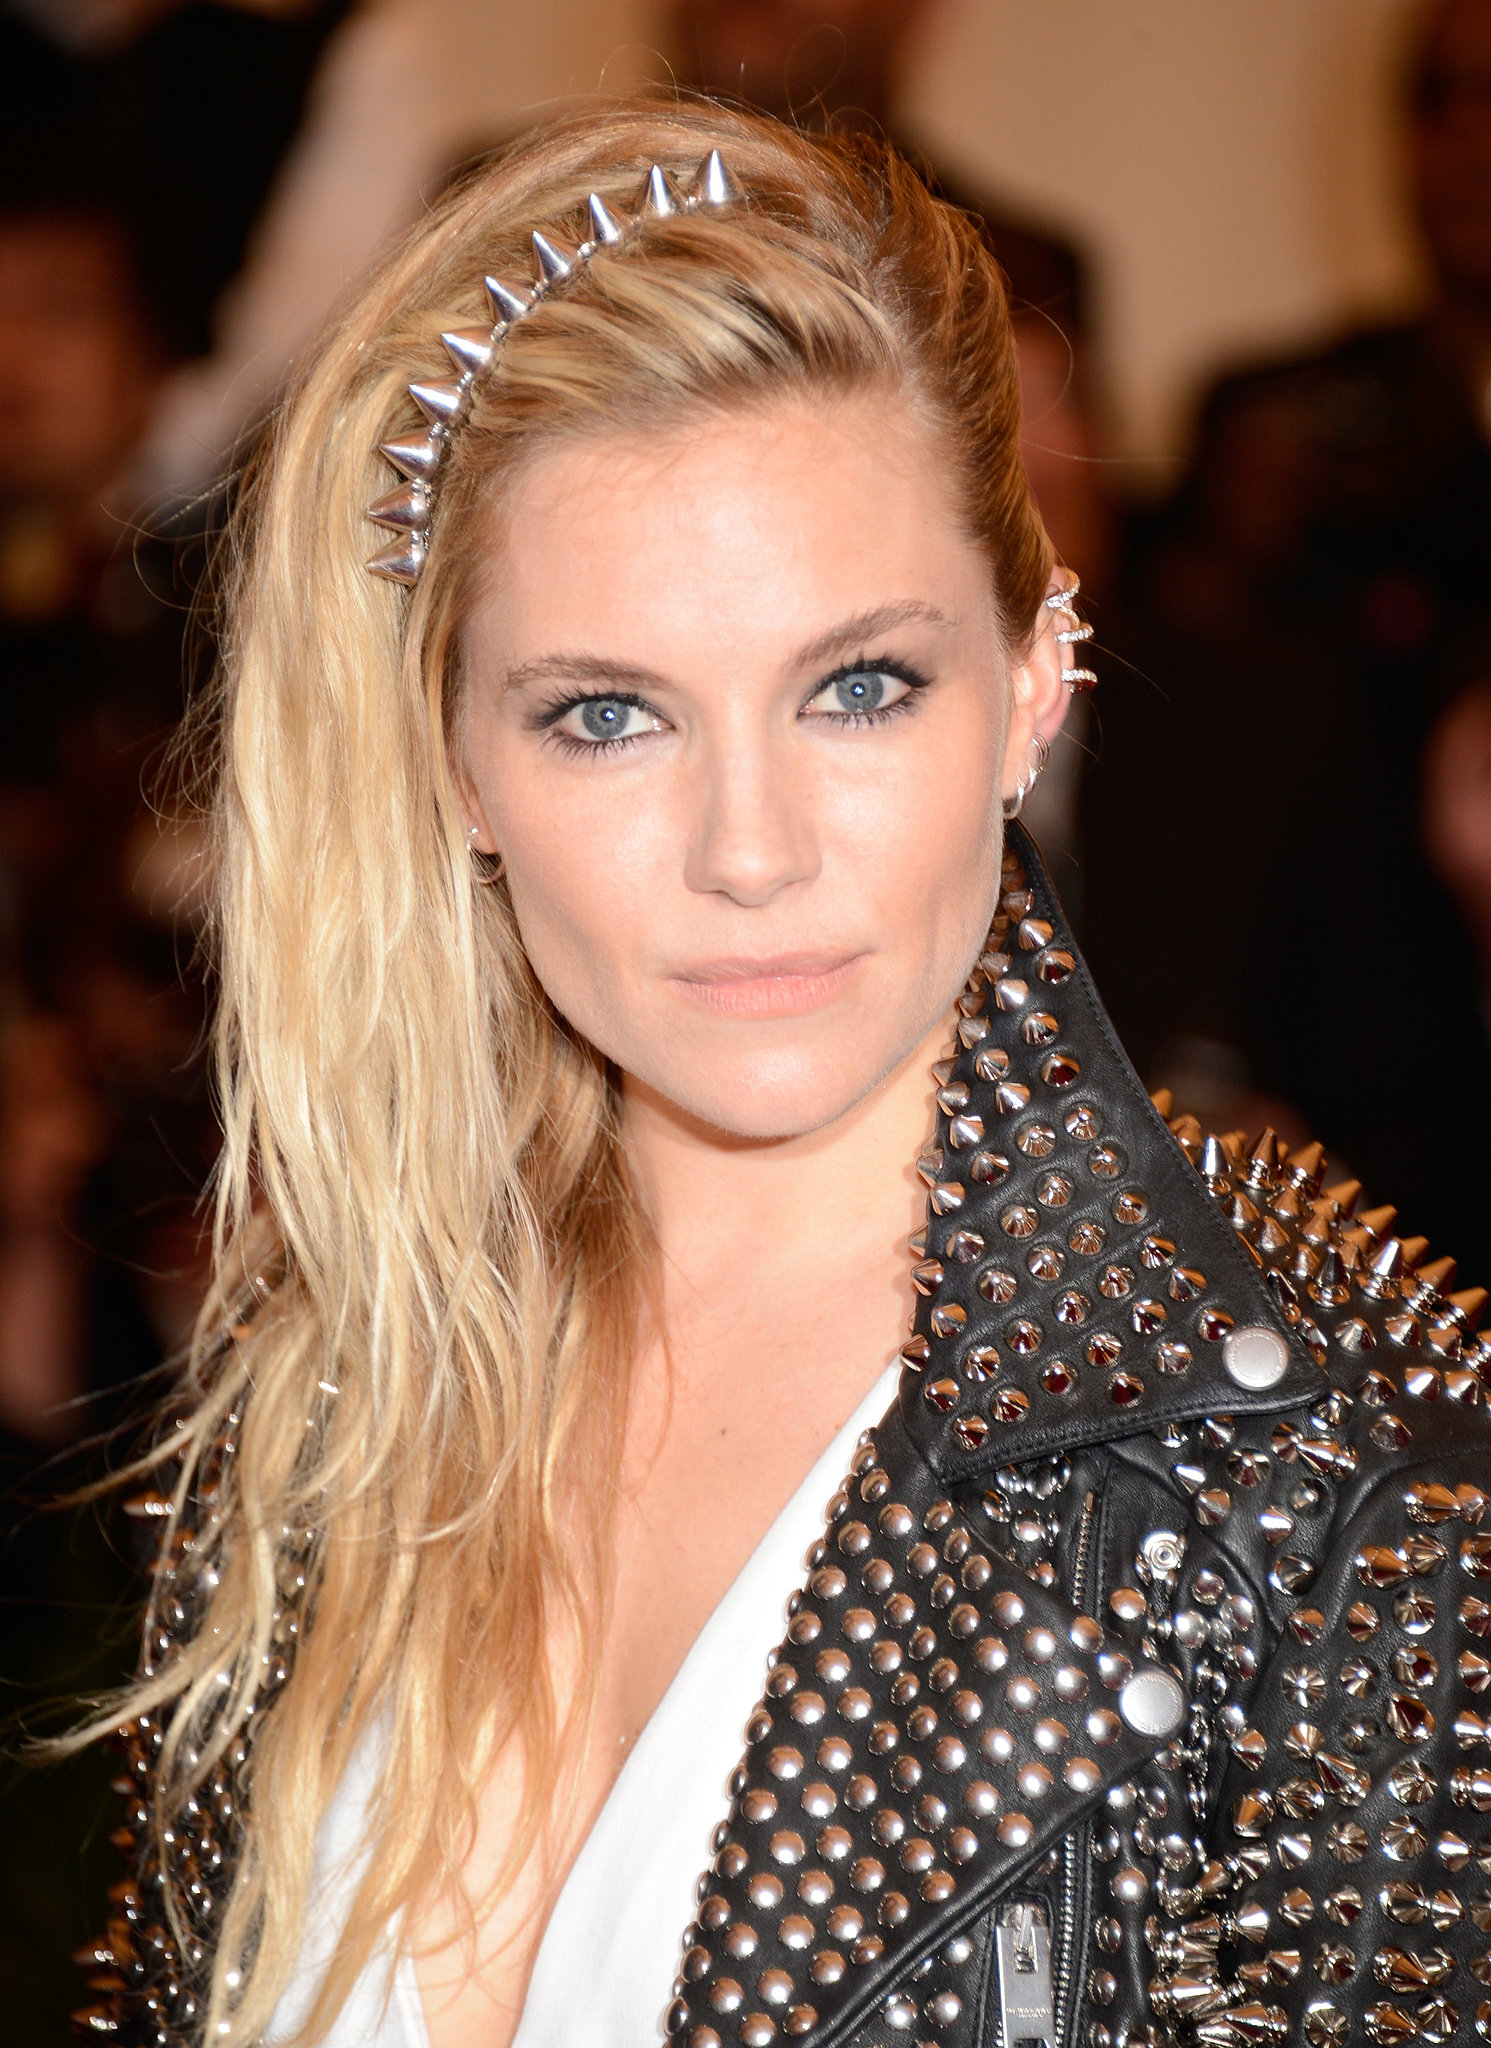 Sienna Miller pulled her tousled hair over to the right and secured the back with a few pins at the nape for the Met Gala. The headband was a nice touch that complemented her earrings.